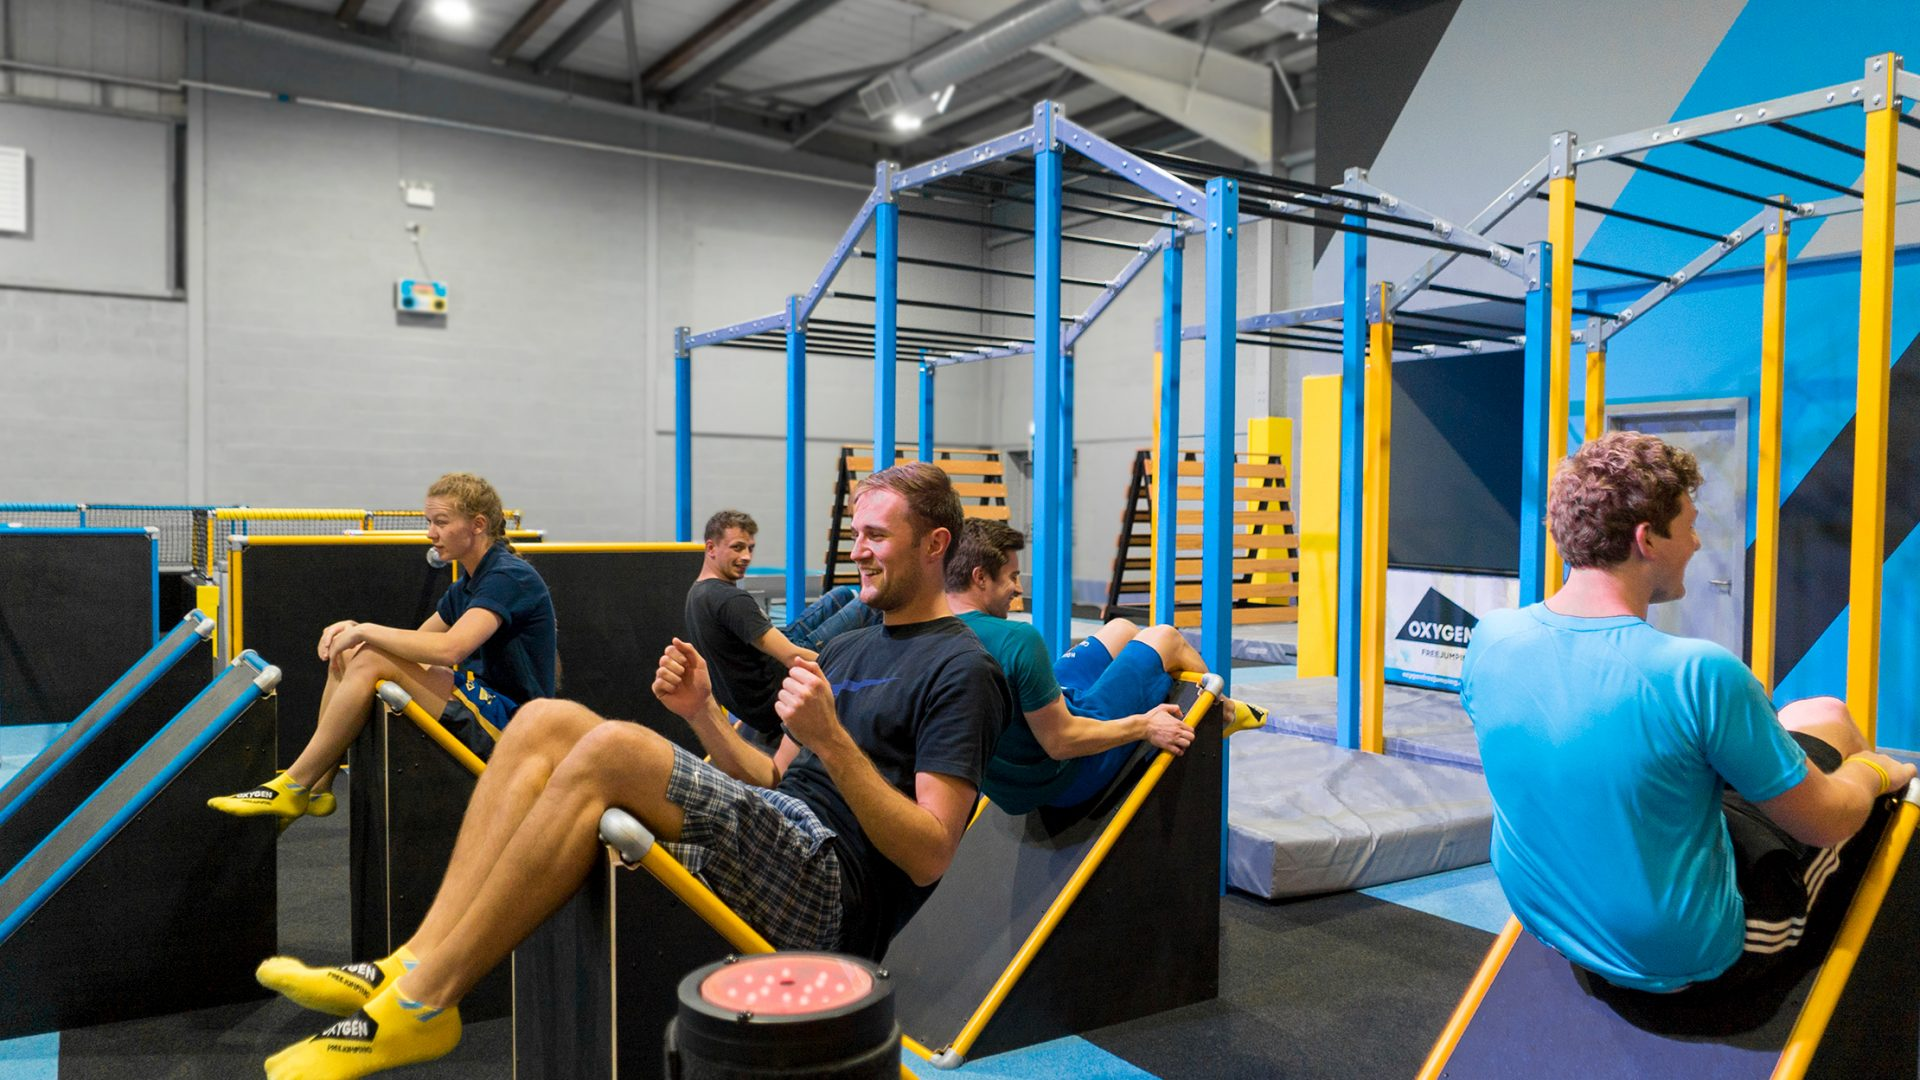 Resistance training class at trampoline park